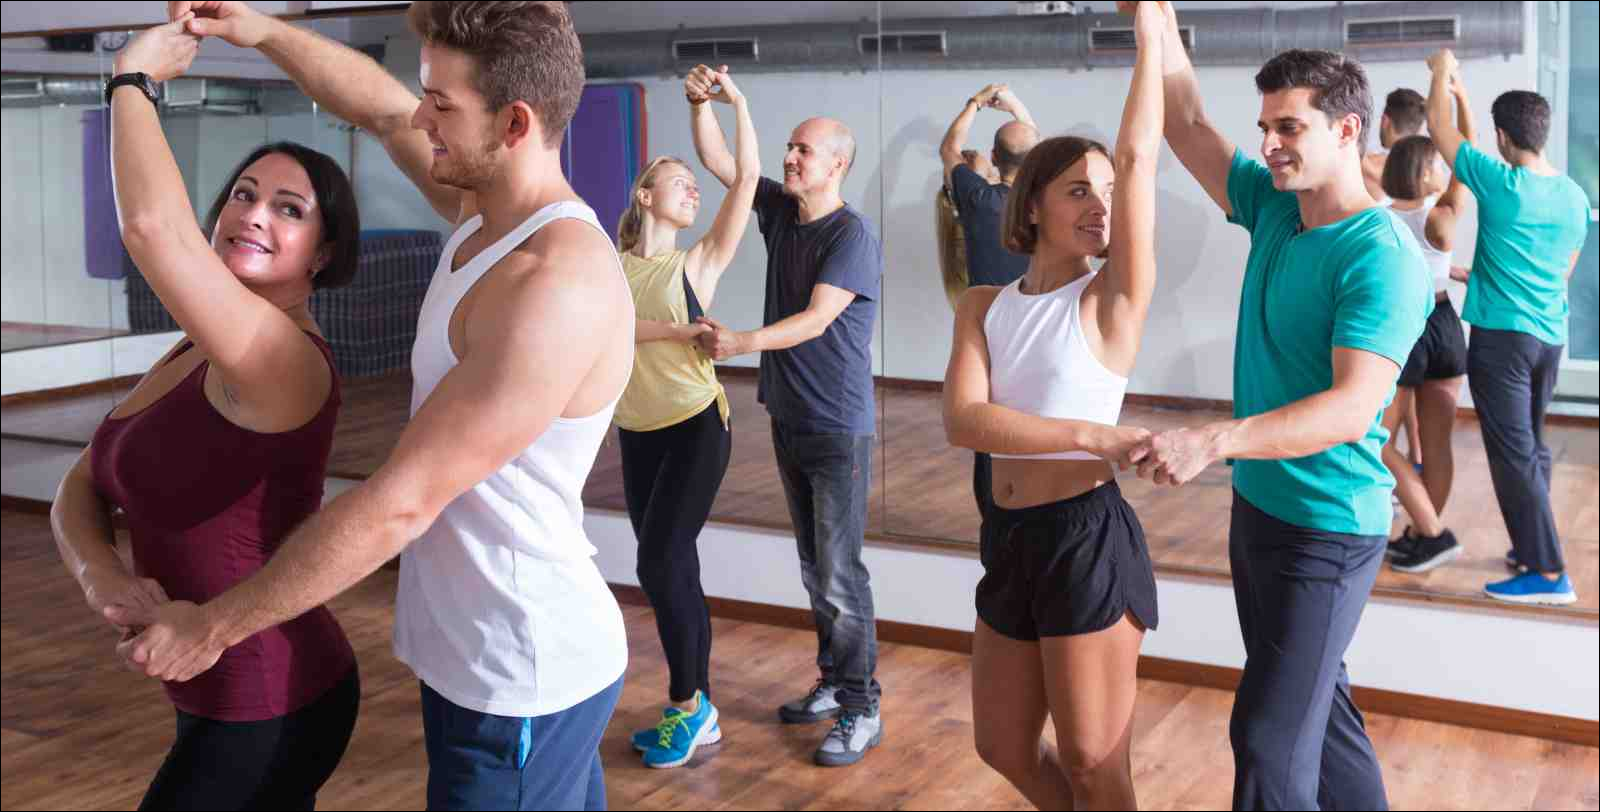 women and men in casual clothing learning dance moves